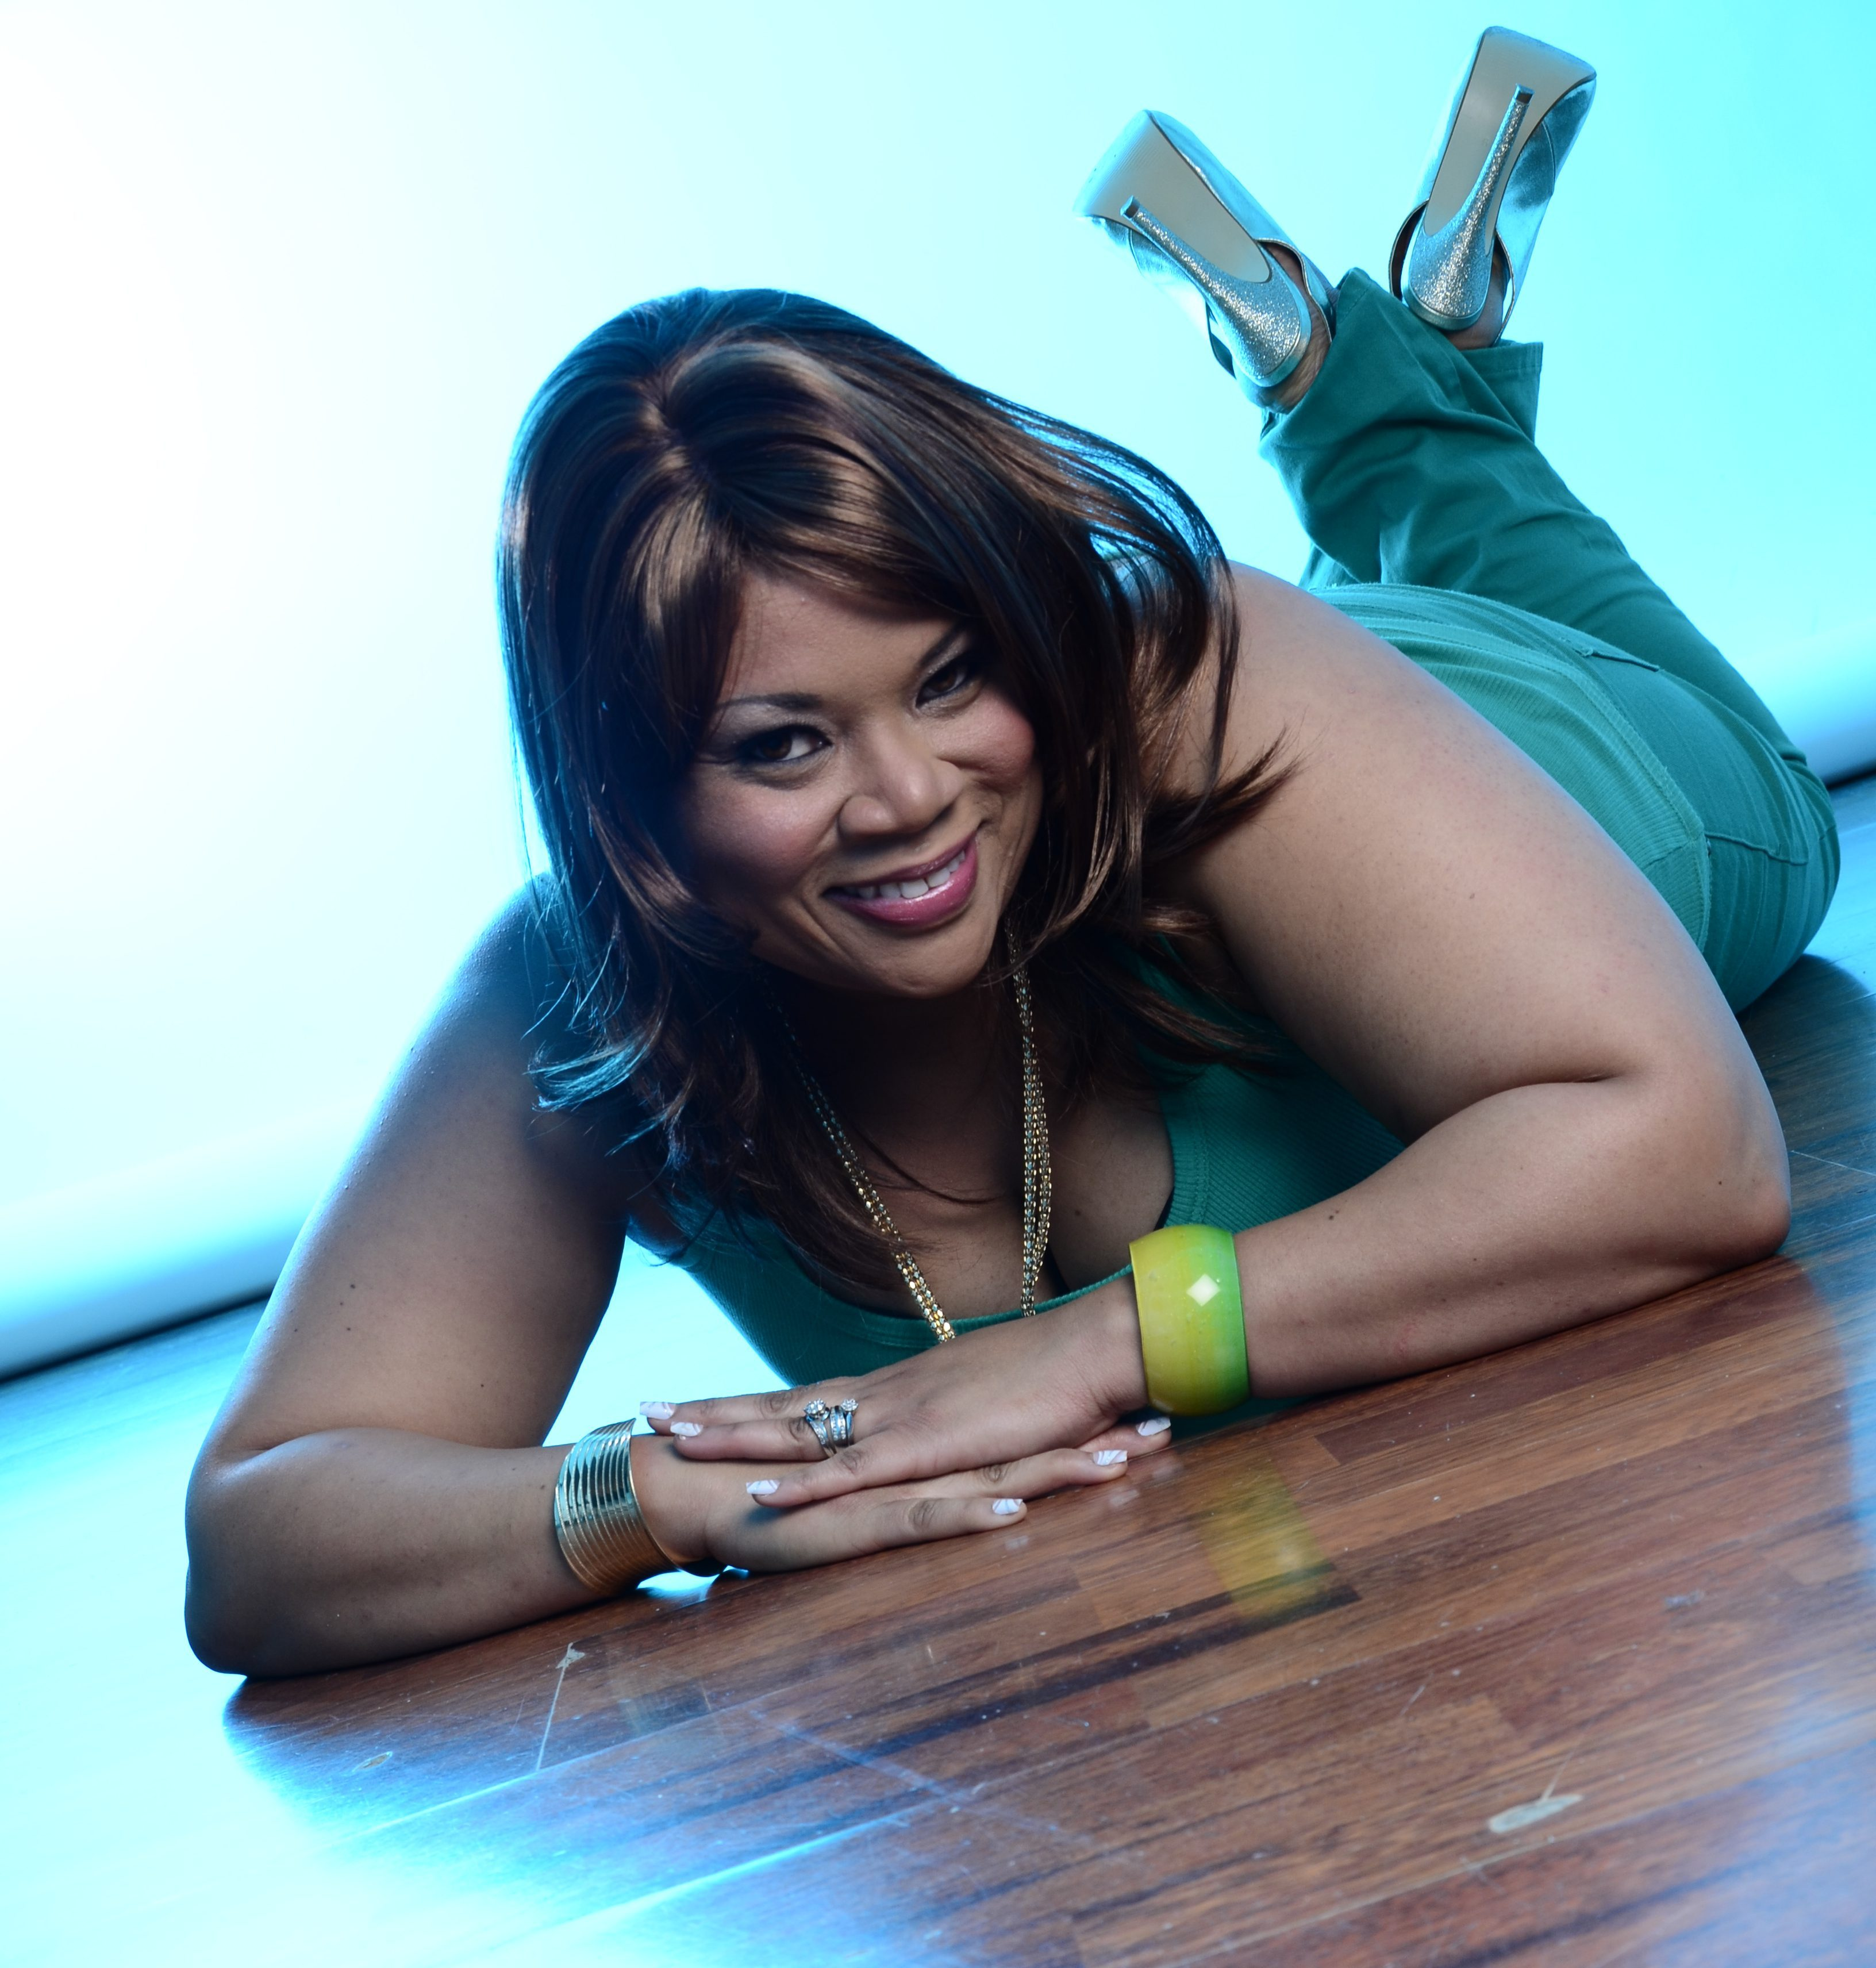 relaxing in green and gold. Lying on the floor with gold shoes and a green outfit.